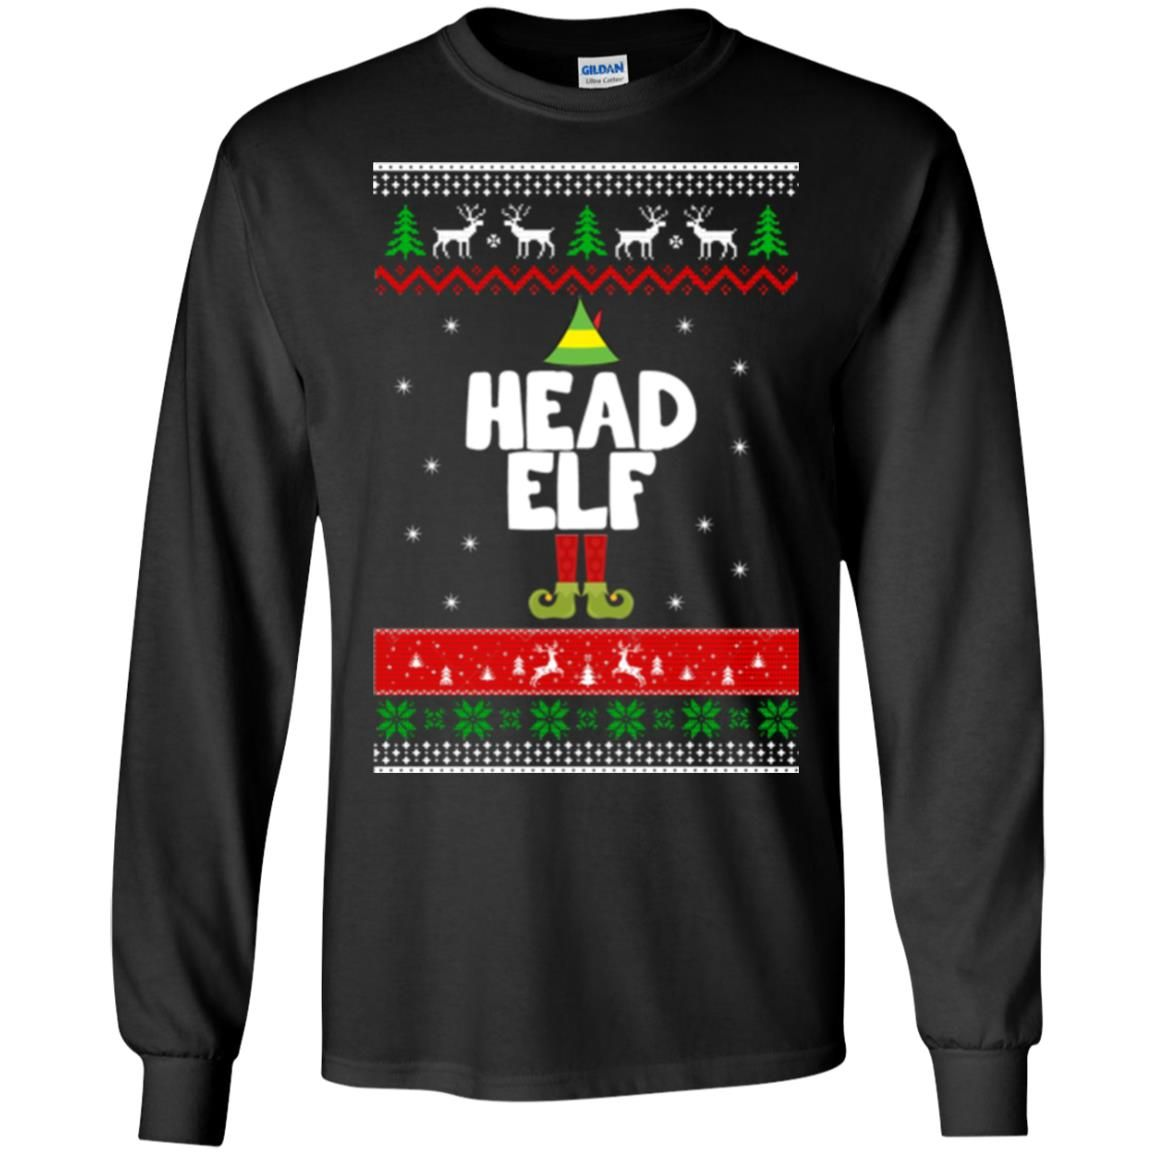 image 1767 - Christmas Vacation: Buddy The Elf sweater, hoodie